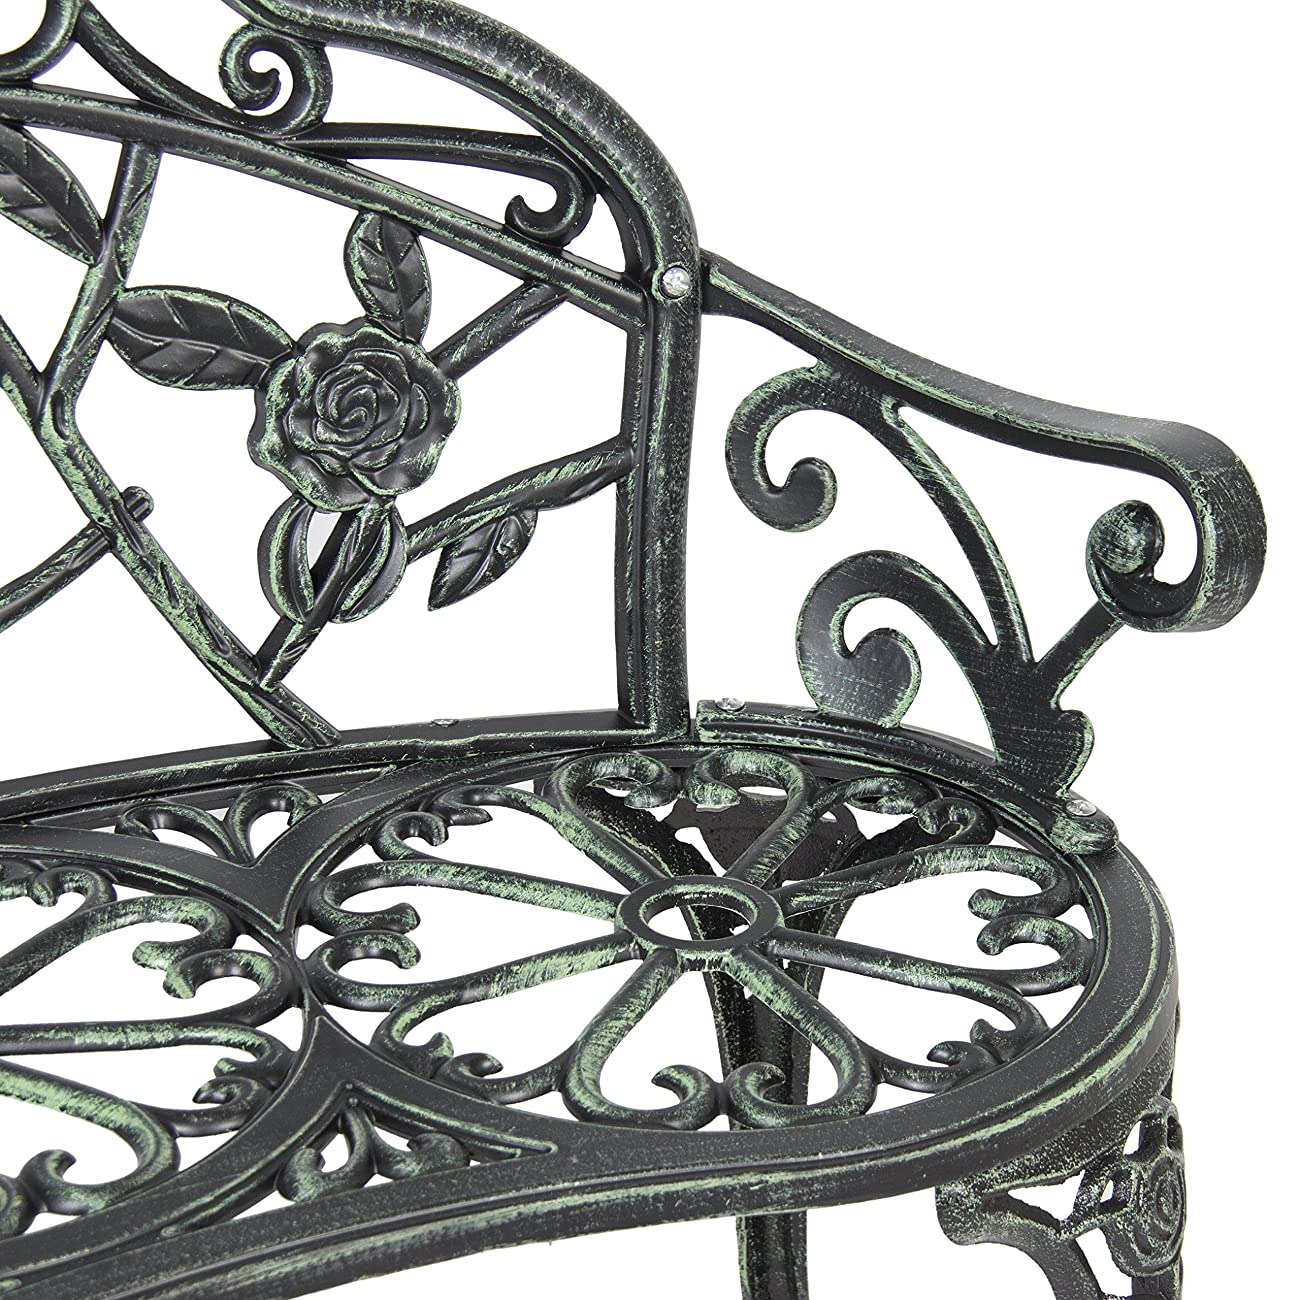 Best Choice Products BCP Outdoor Patio Garden Bench Cast Iron Antique Rose Backyard Porch Furniture 4